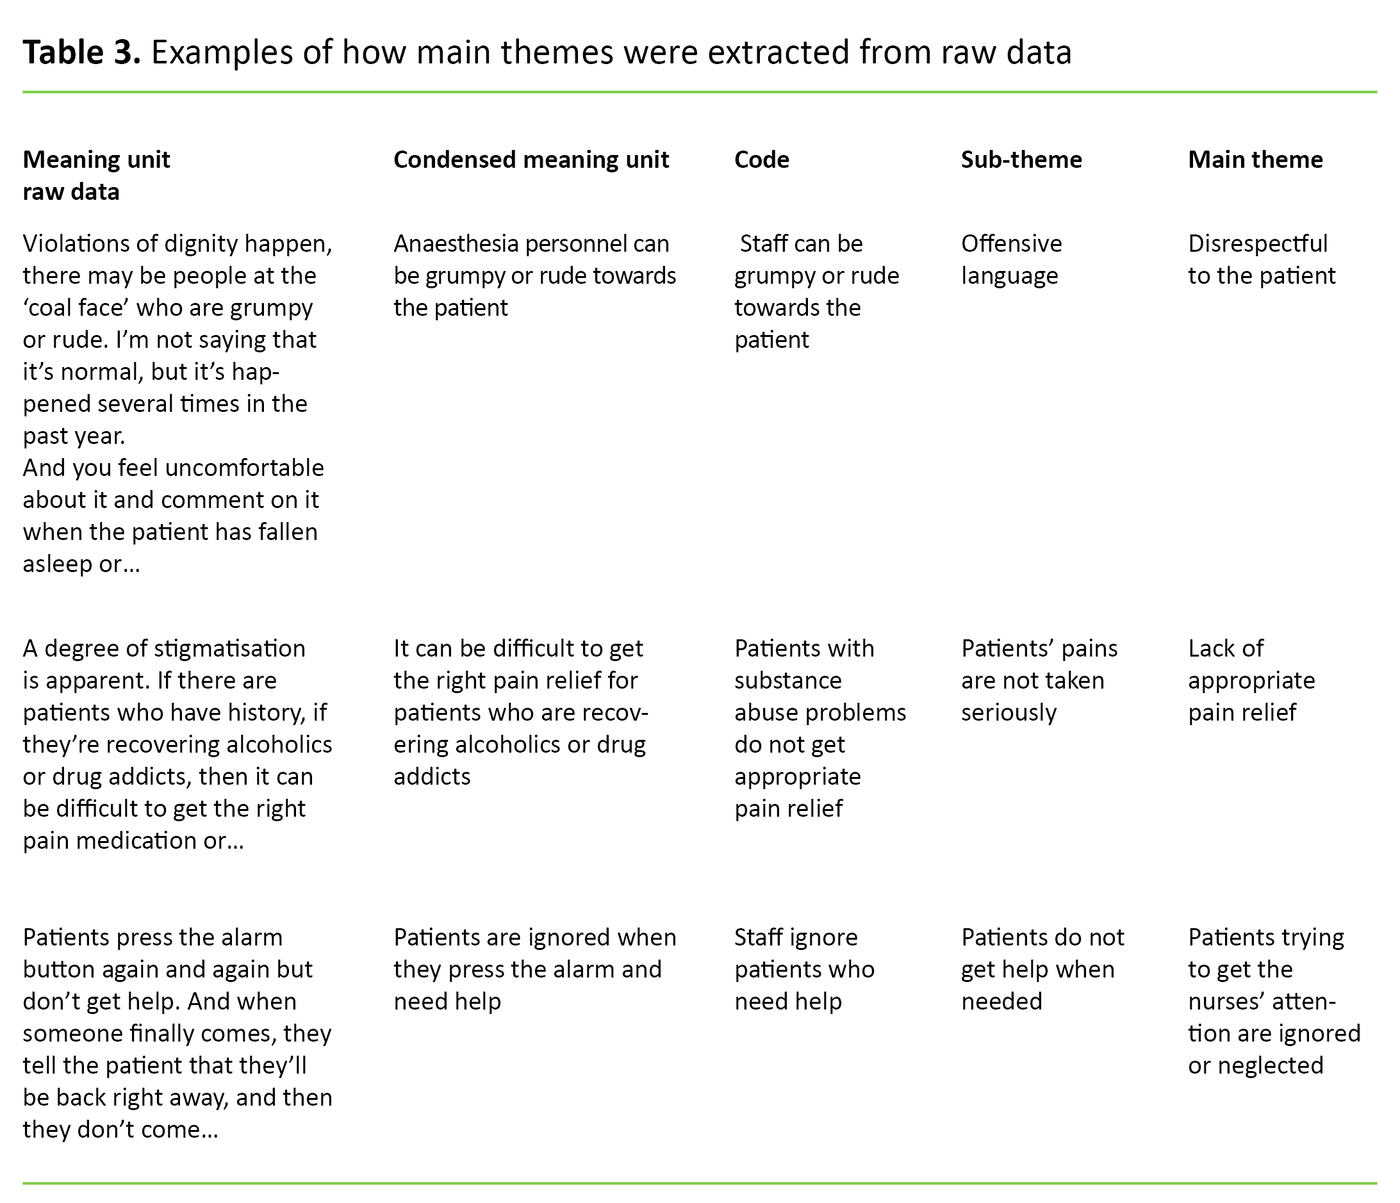 Table 3. Examples of how main themes were extracted from raw data